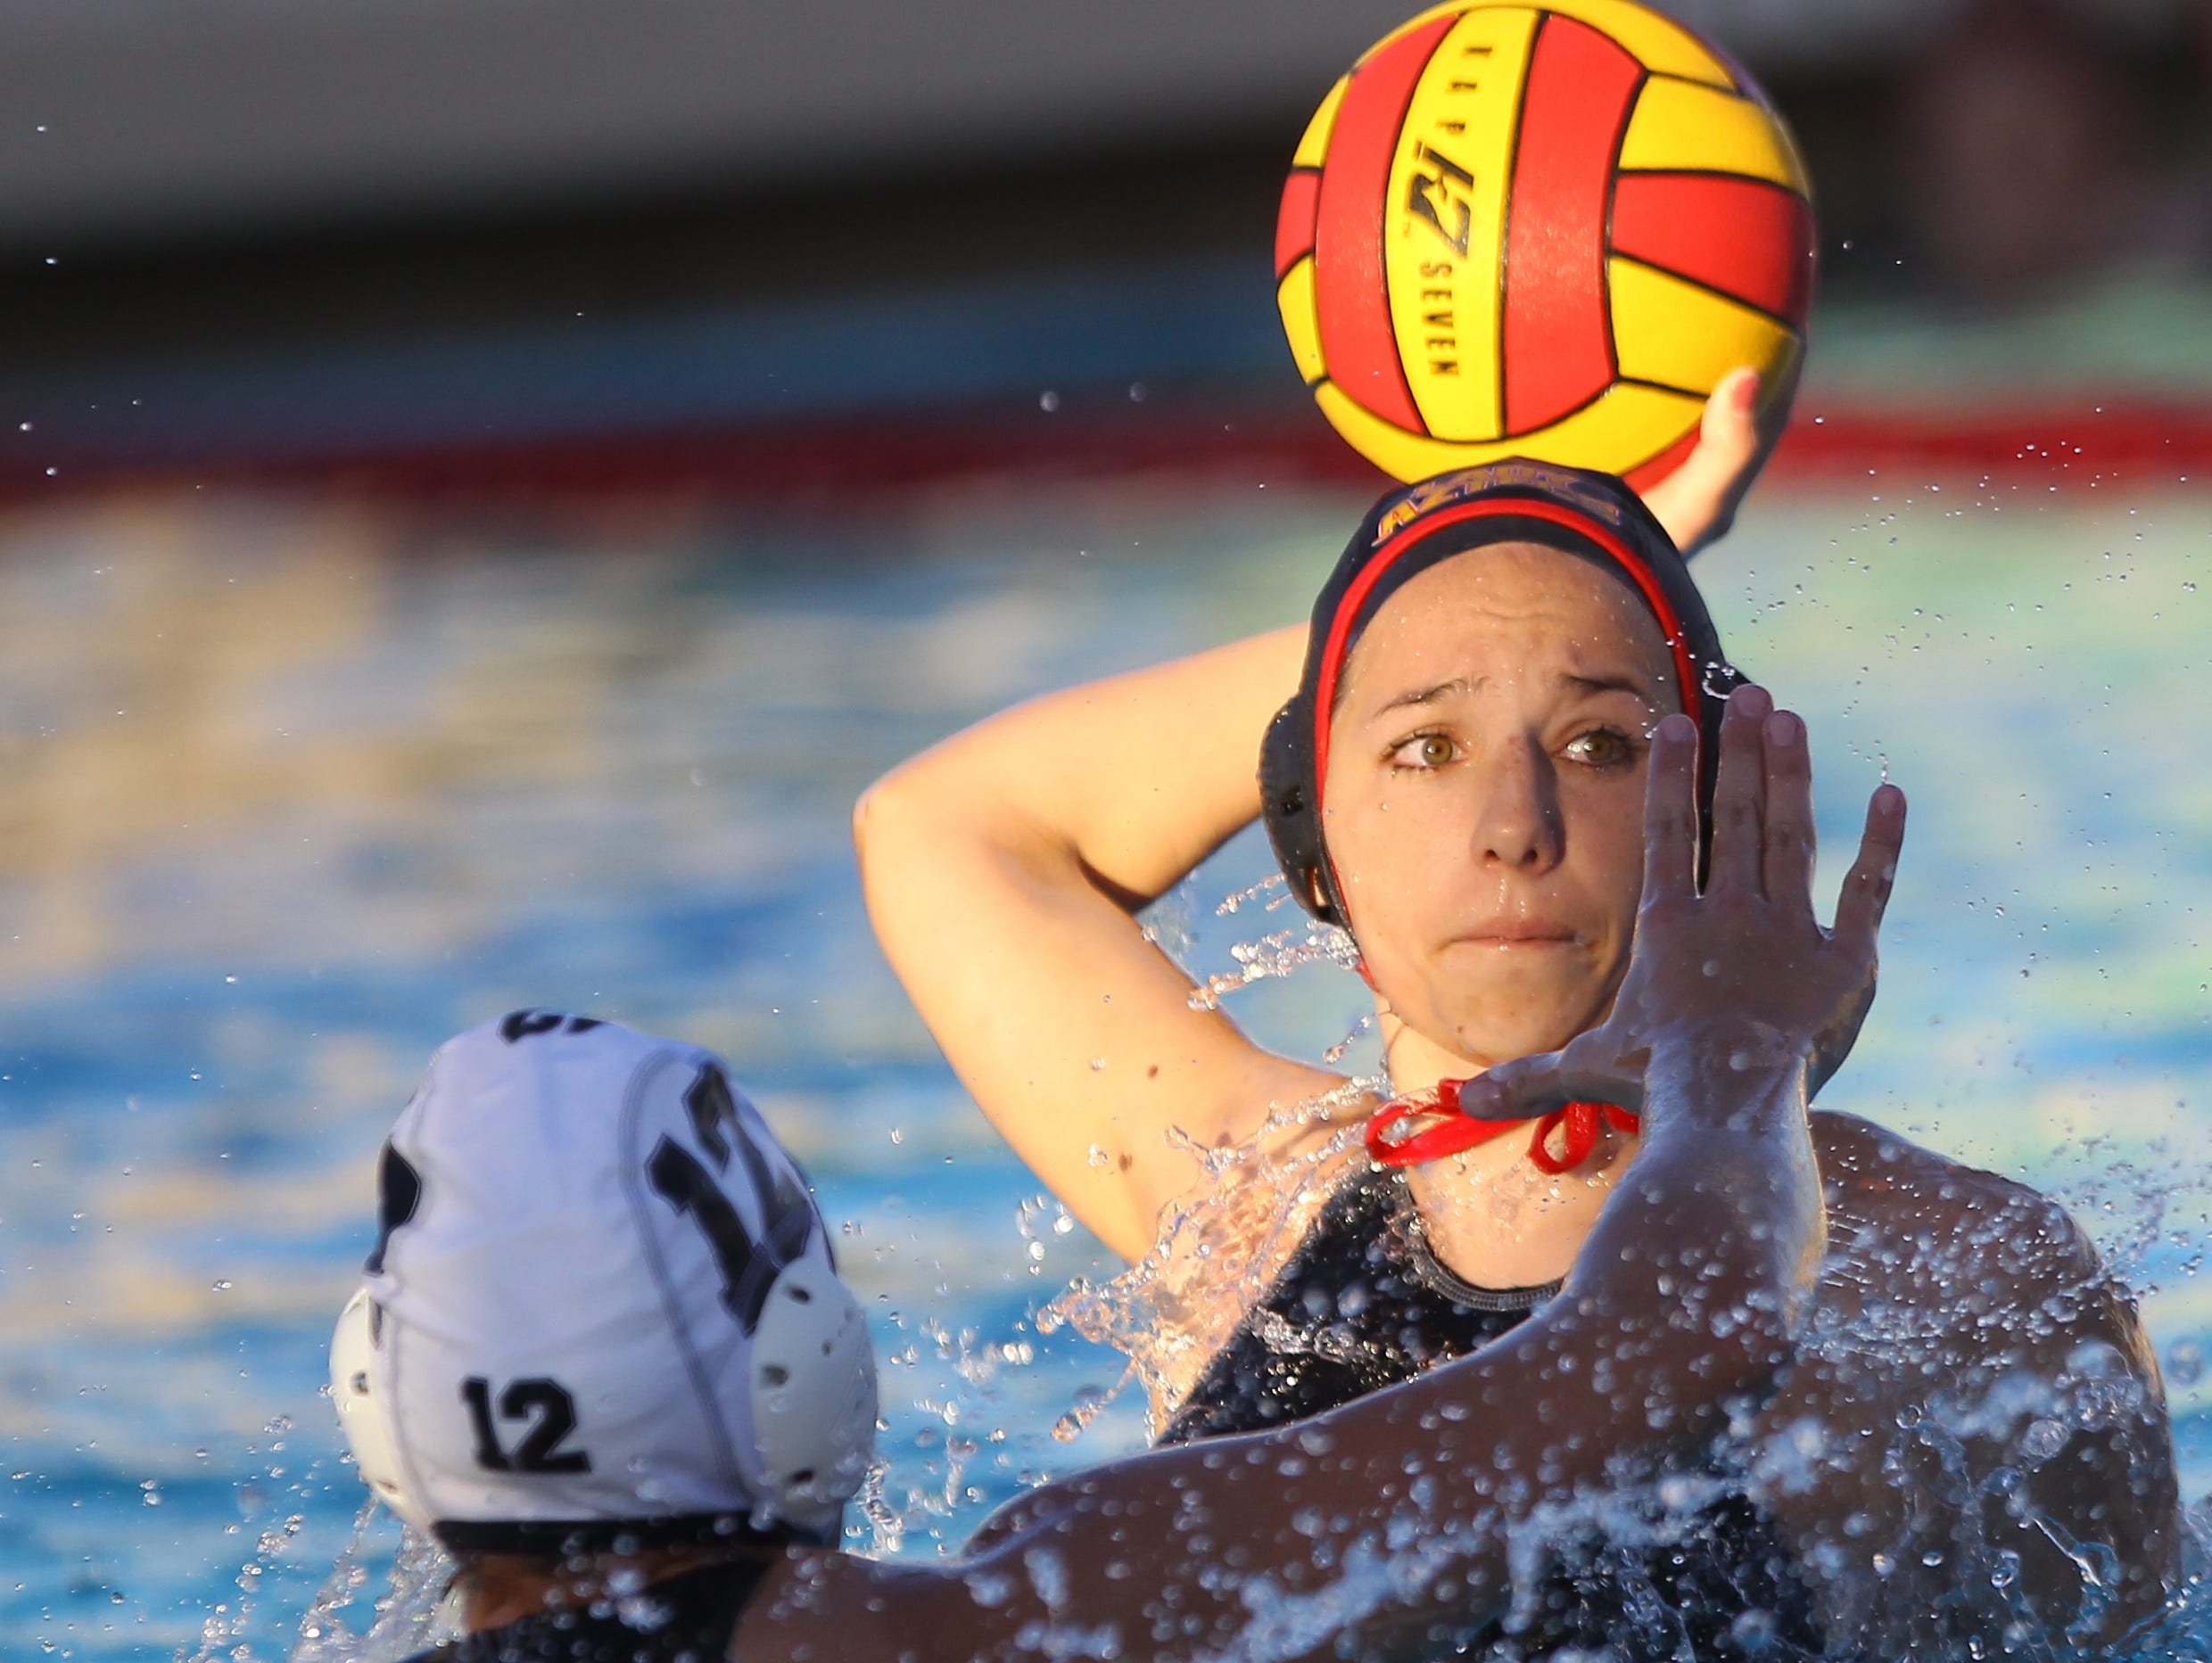 Palm Desert High School's Alyssa Clyde shoots on goal as Xavier Prep's #12 defends during their match at Palm Desert High School.